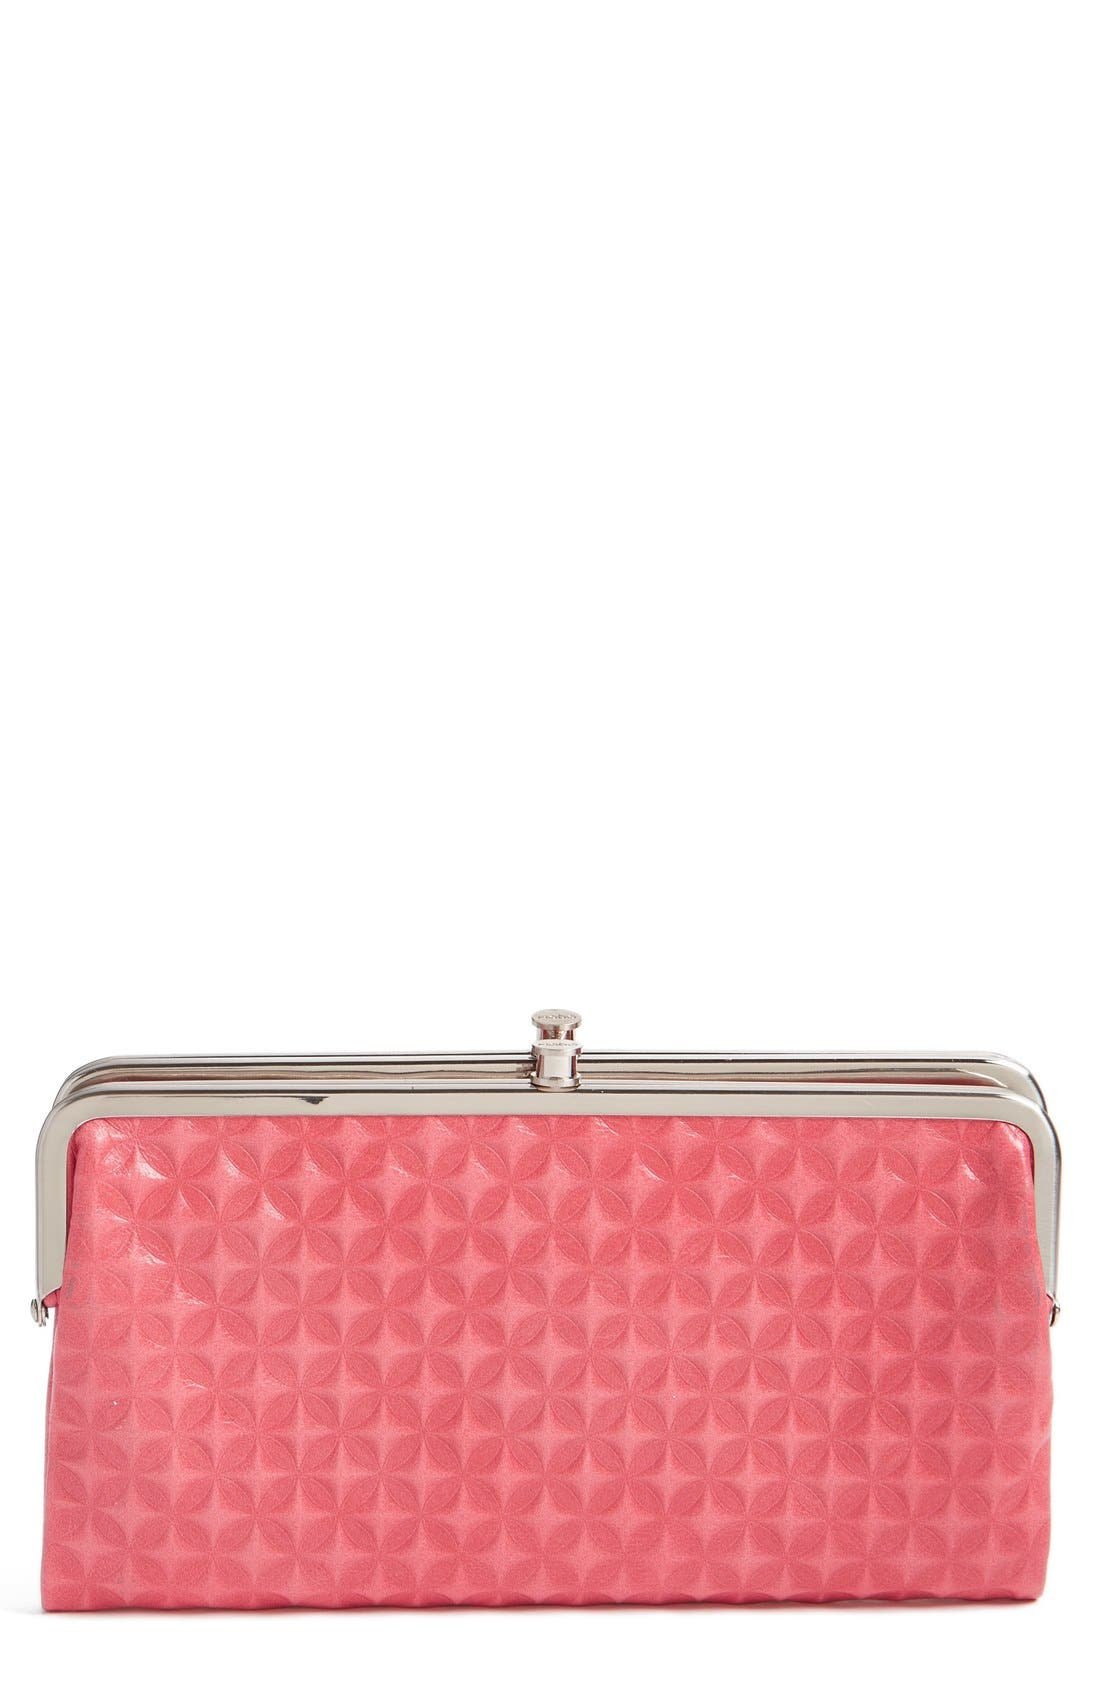 Main Image - Hobo 'Lauren' Embossed Leather Double Frame Clutch